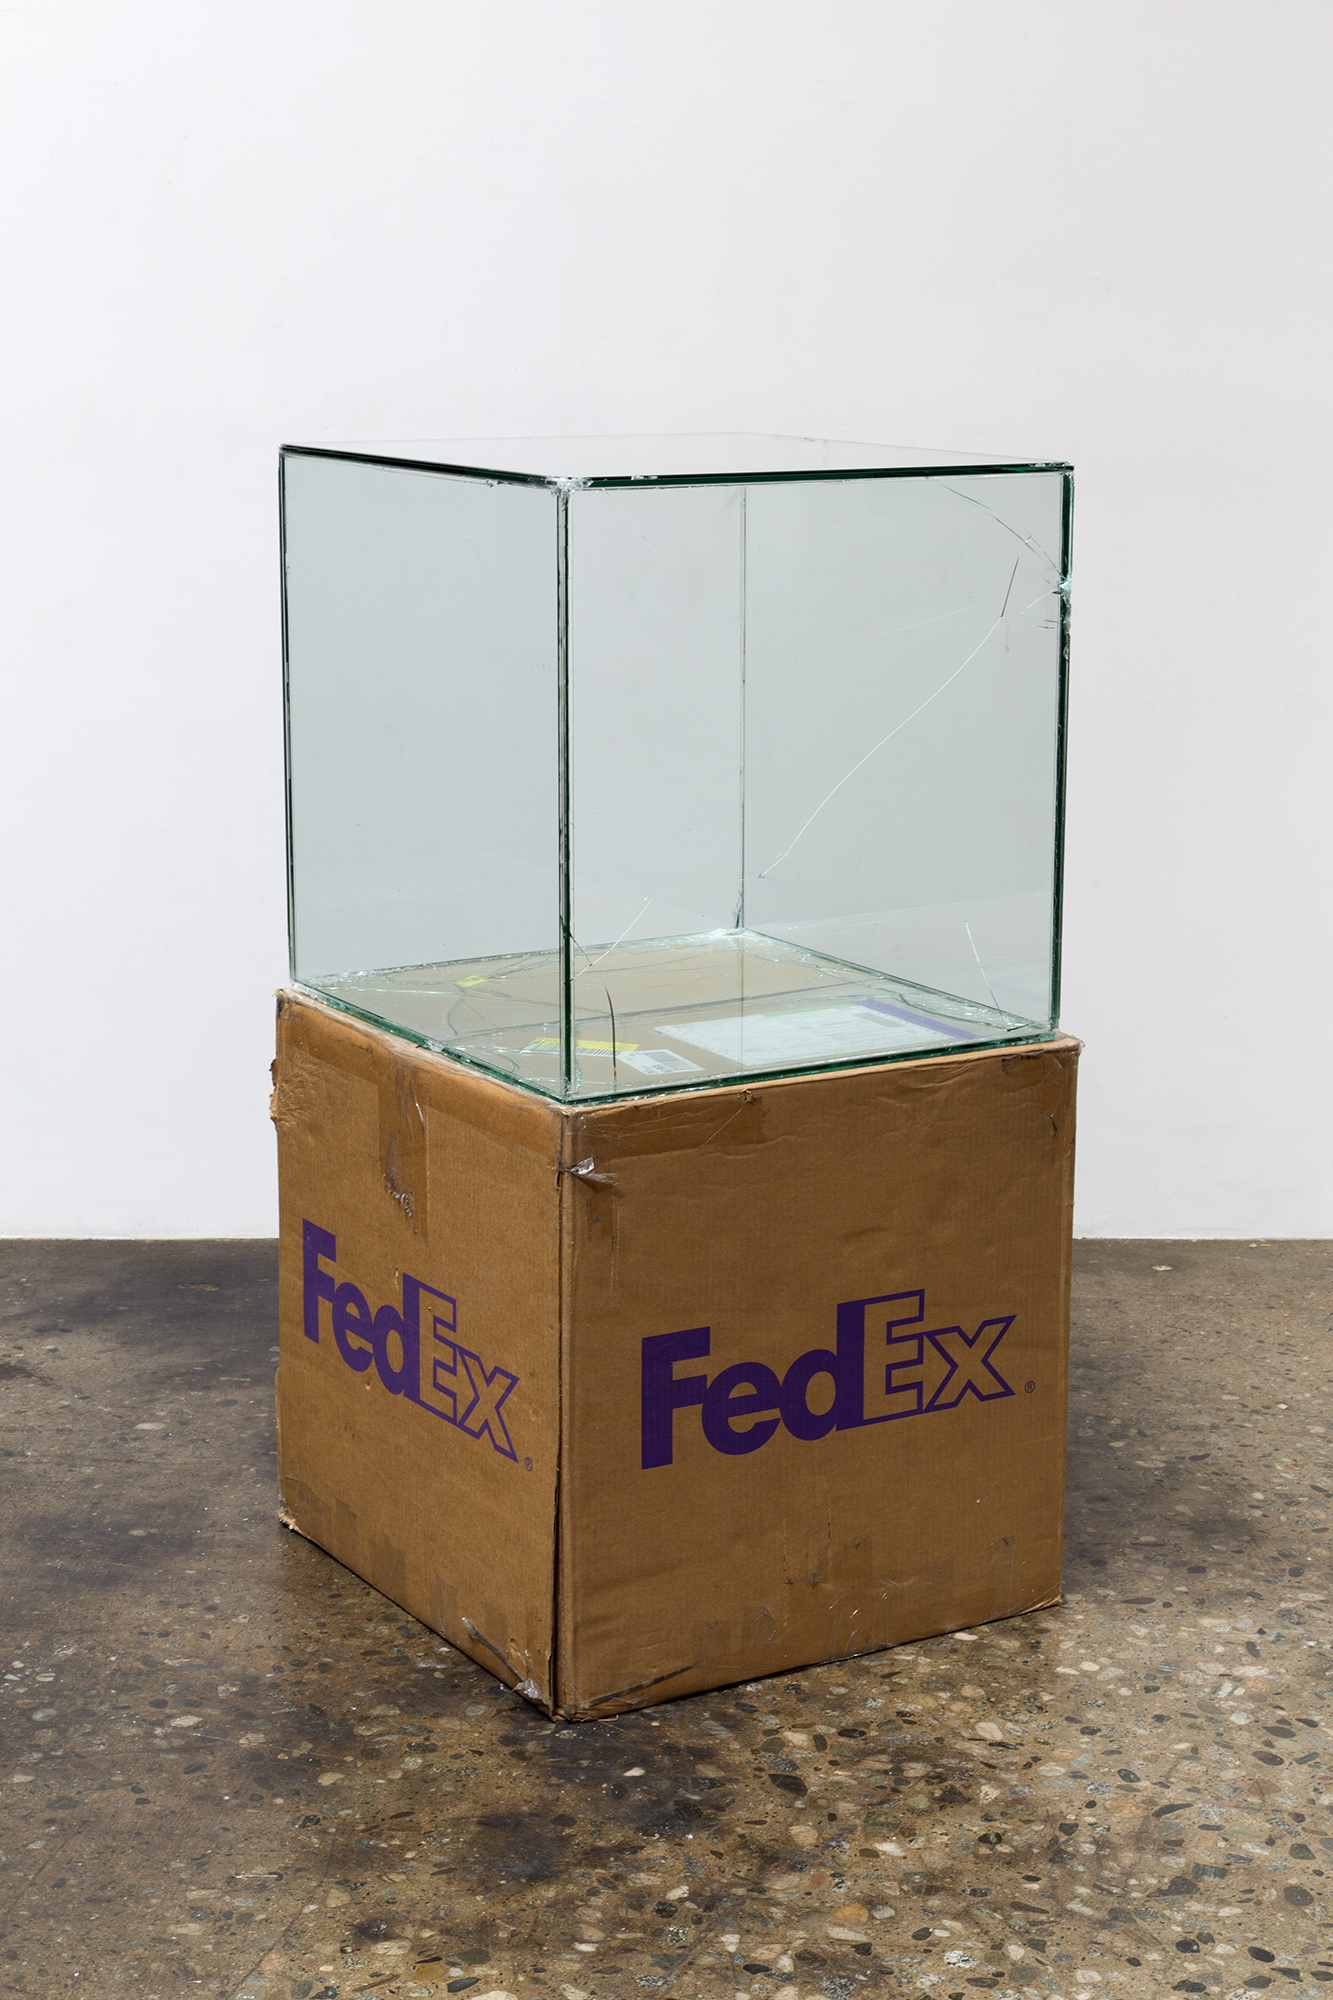 FedEx® Large Kraft Box  © 2008 FEDEX 330510 REV 6/08 GP, International Priority, Los Angeles–Tokyo trk#778608512056, March 9–13, 2017   2017–  Laminated glass, FedEx shipping box, accrued FedEx shipping and tracking labels, silicone, metal, tape  24 x 24 x 24 inches   FedEx Glass Works, 2007–    Transparencies, 2017